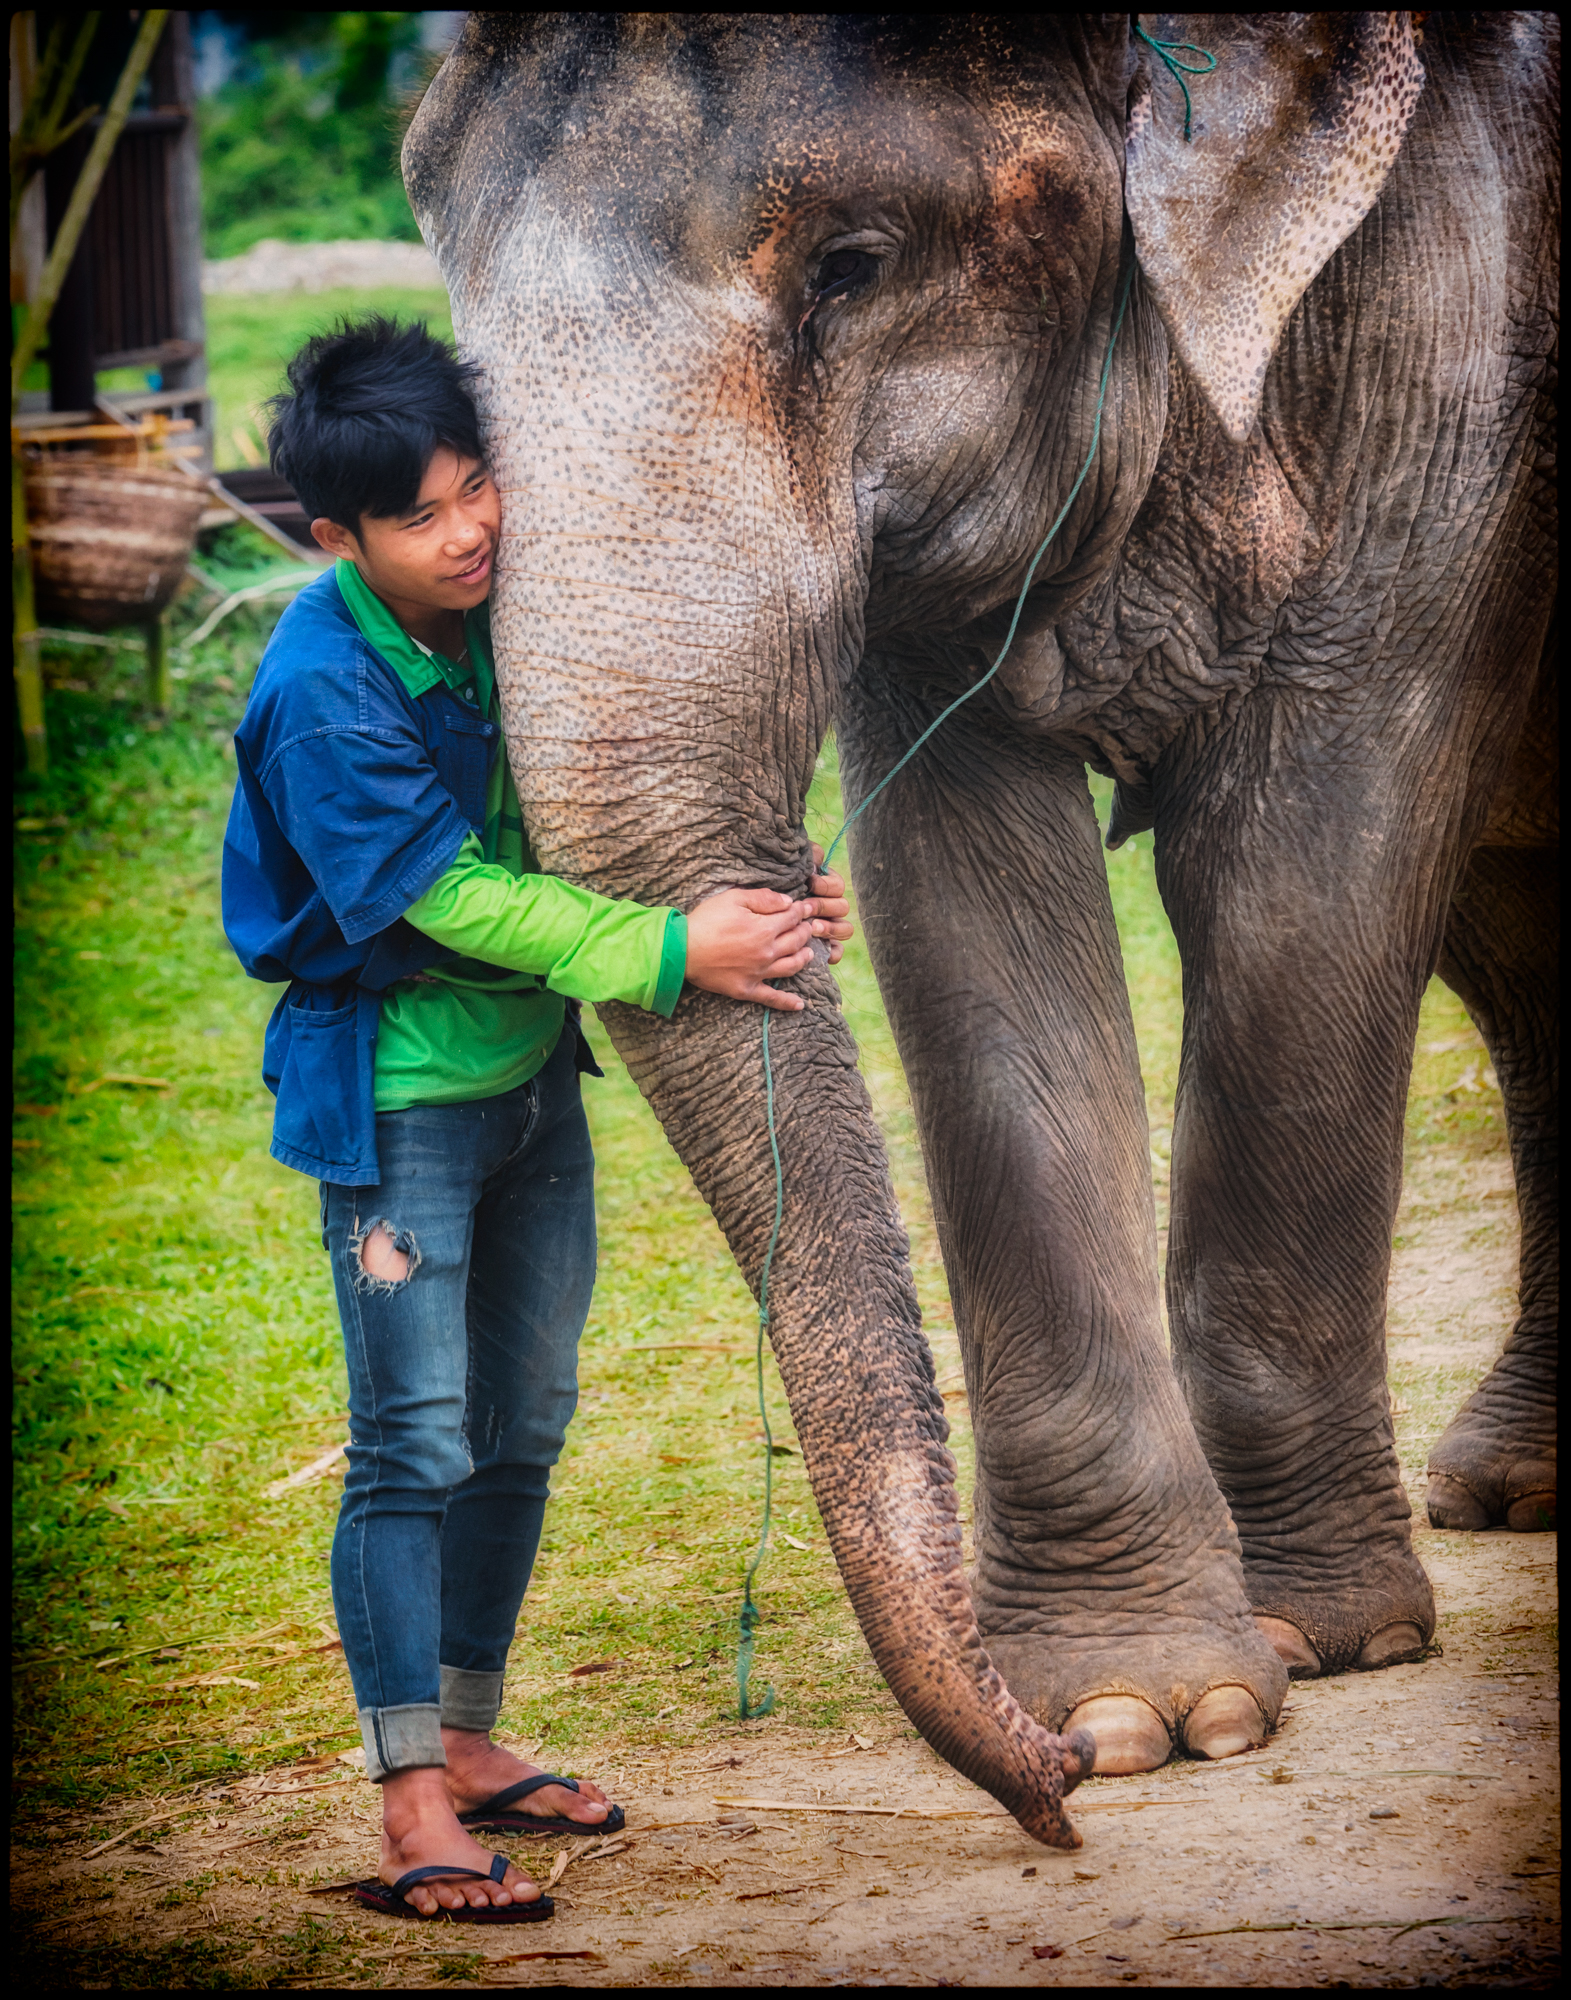 Mahout and his elephant